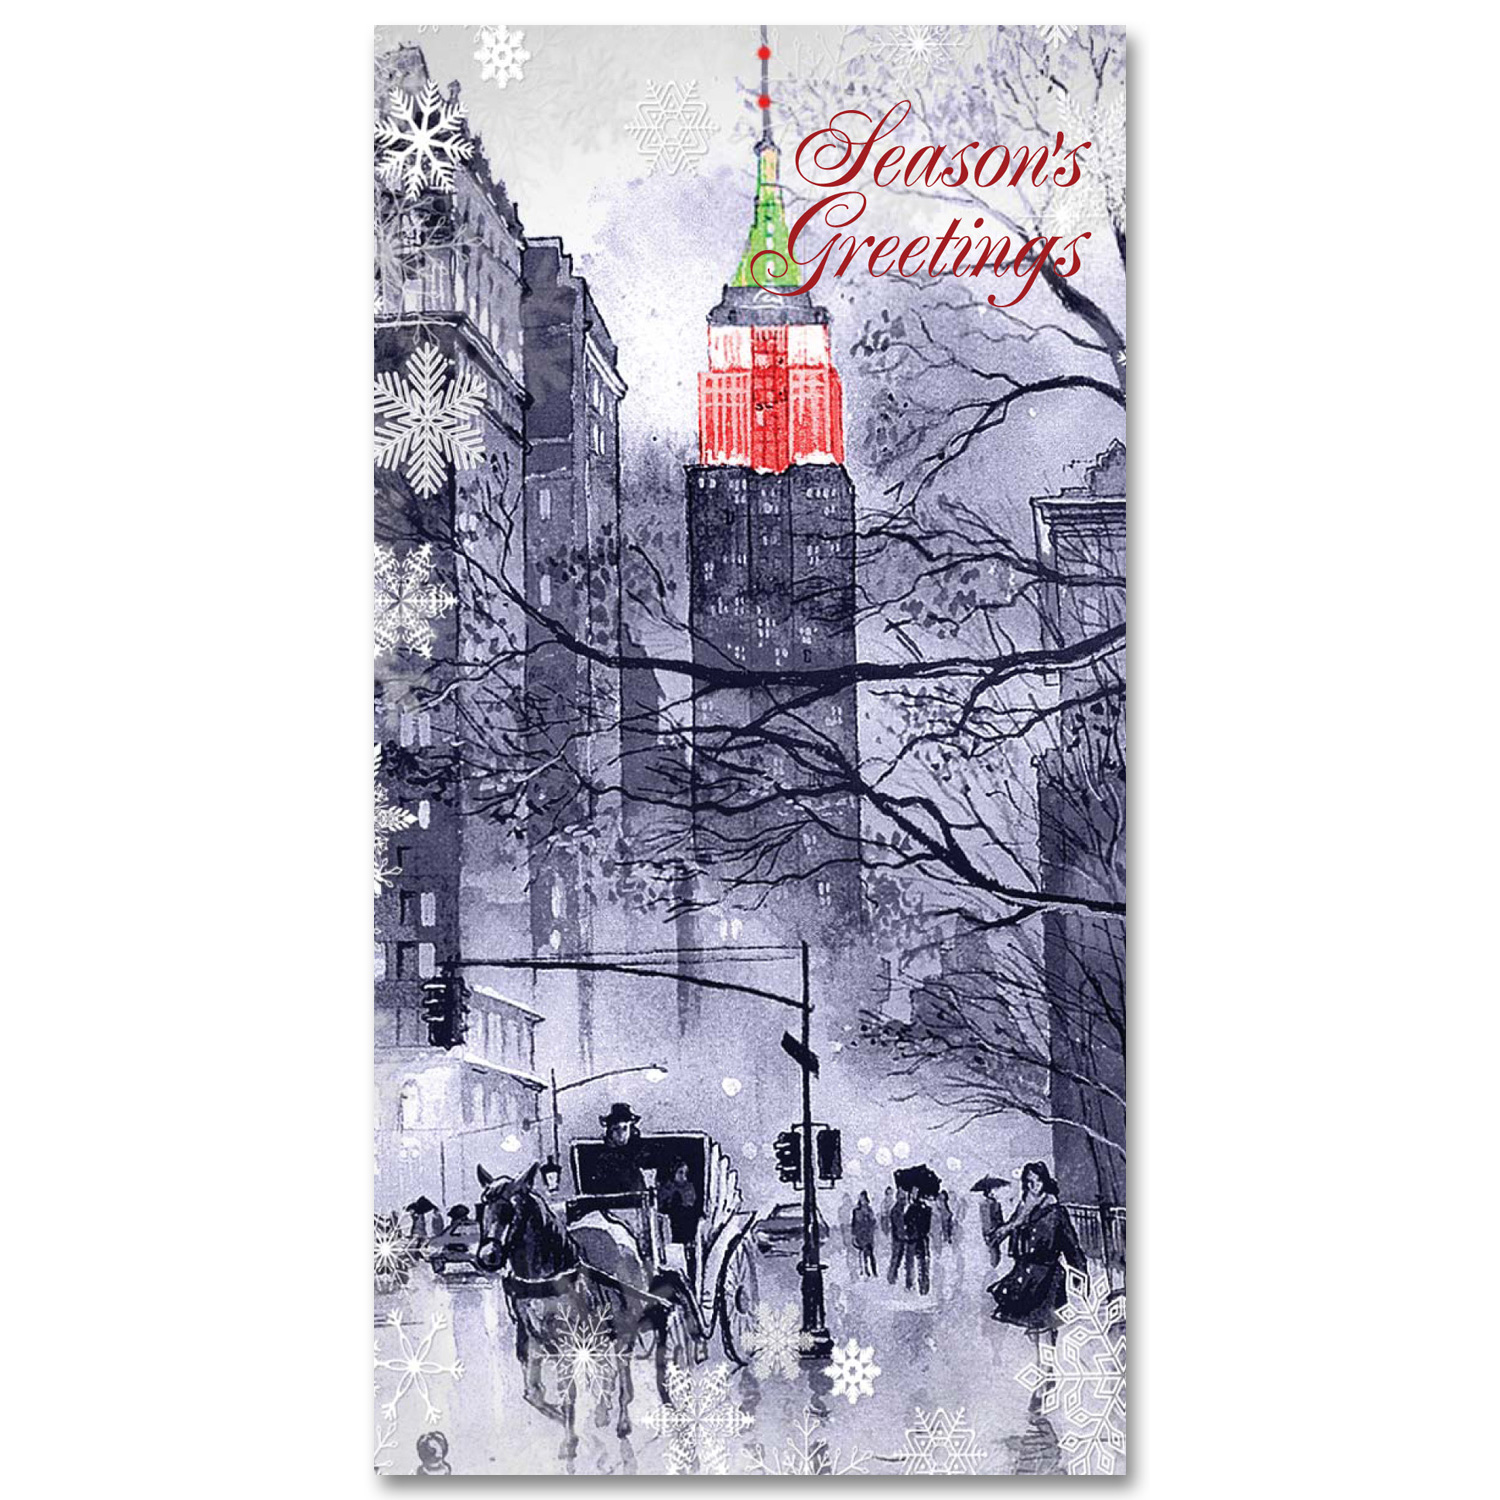 Carriage at Empire State Building on Christmas – Holidays Money Greeting Cards Holders Set of 6